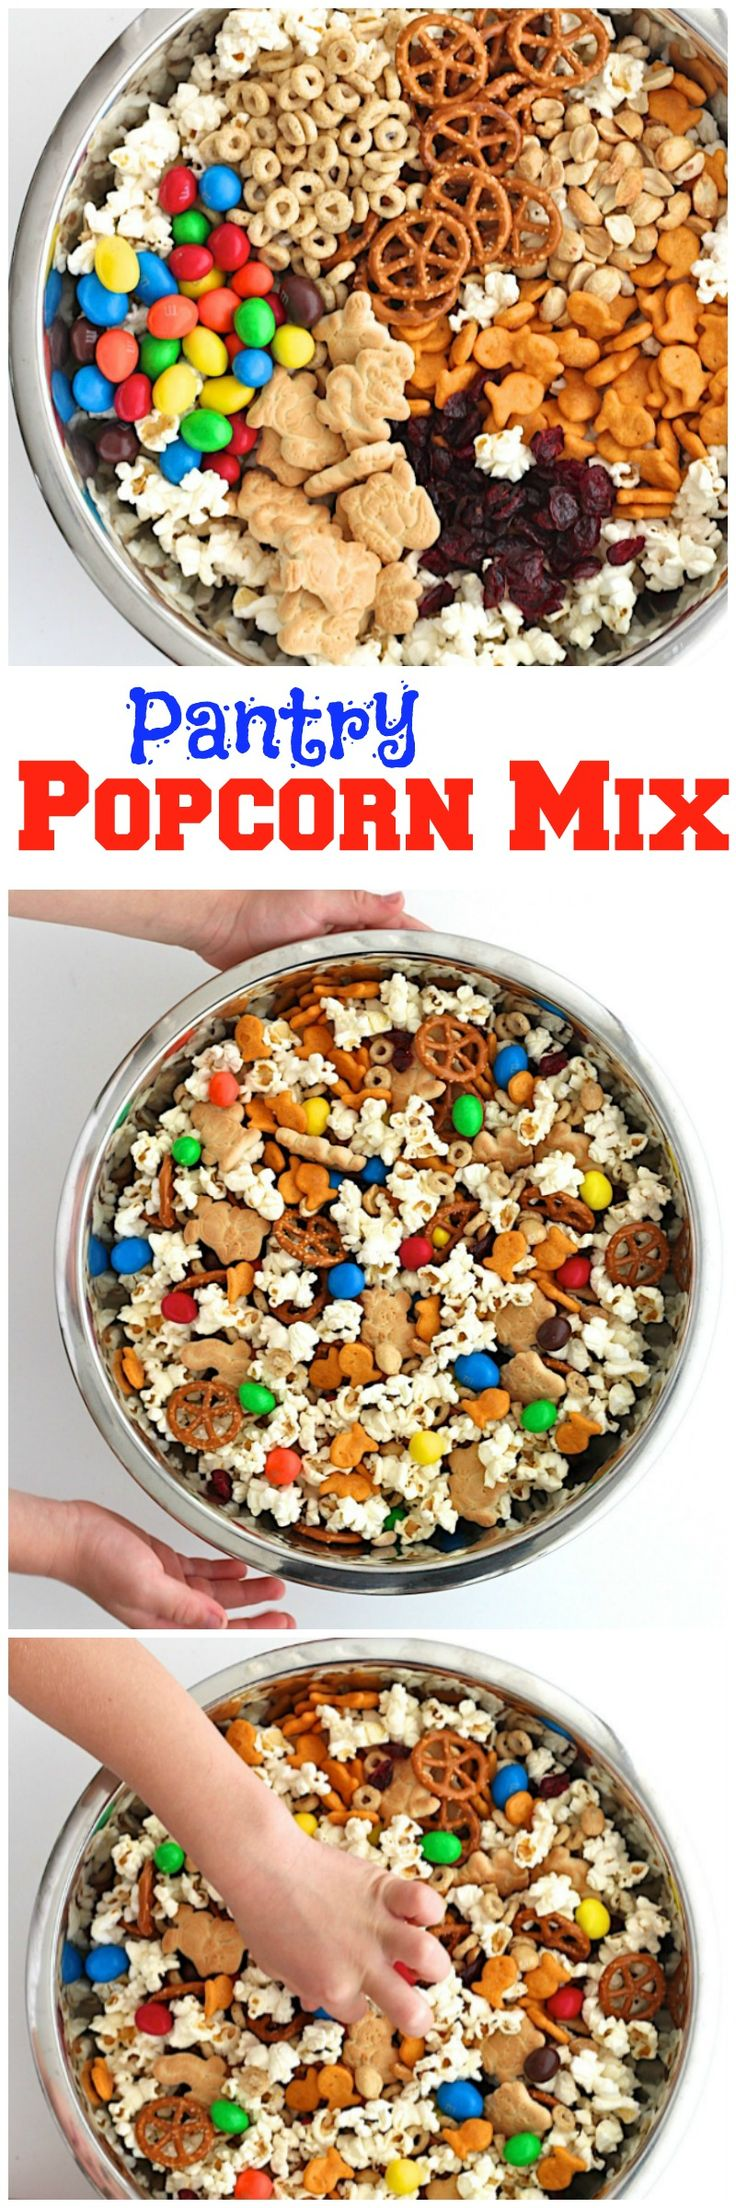 Toss handfuls of your favorite pantry snacks in a big bowlwithfresh popped popcorn andyou've got a quick, tastysnack mix that'sperfect for movie night, birthday parties or any occasion! The boys are so excited to share their absolute favorite rainy day/movie night/or anytime I'll let them make it Pantry Popcorn Mix with you! It's so easy...